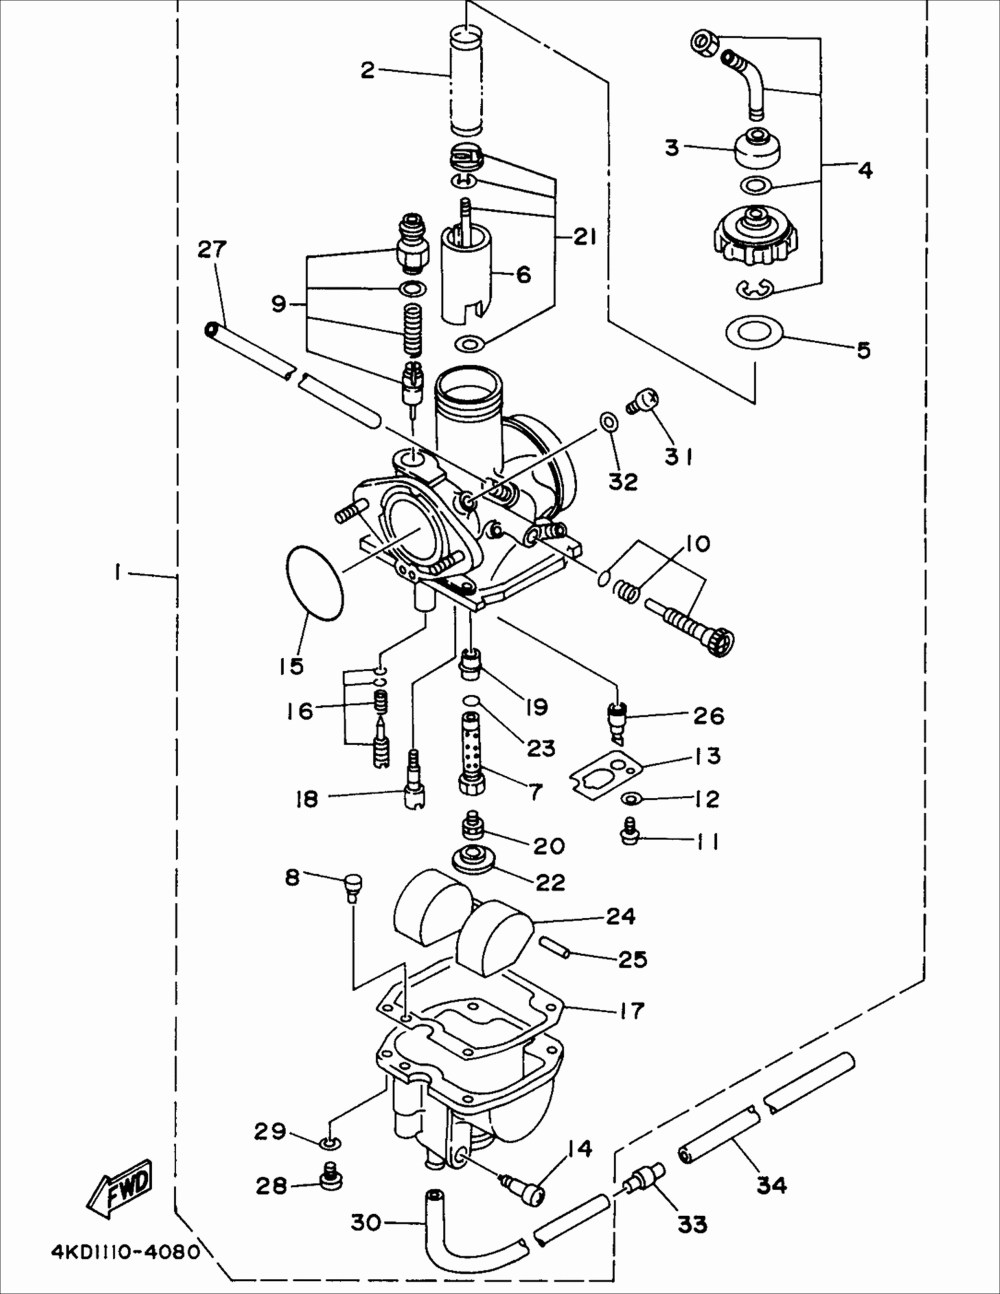 medium resolution of 1995 mitsubishi mirage wiring diagram automotive wiring diagrams rh mazhai net 2001 mitsubishi mirage wiring harness